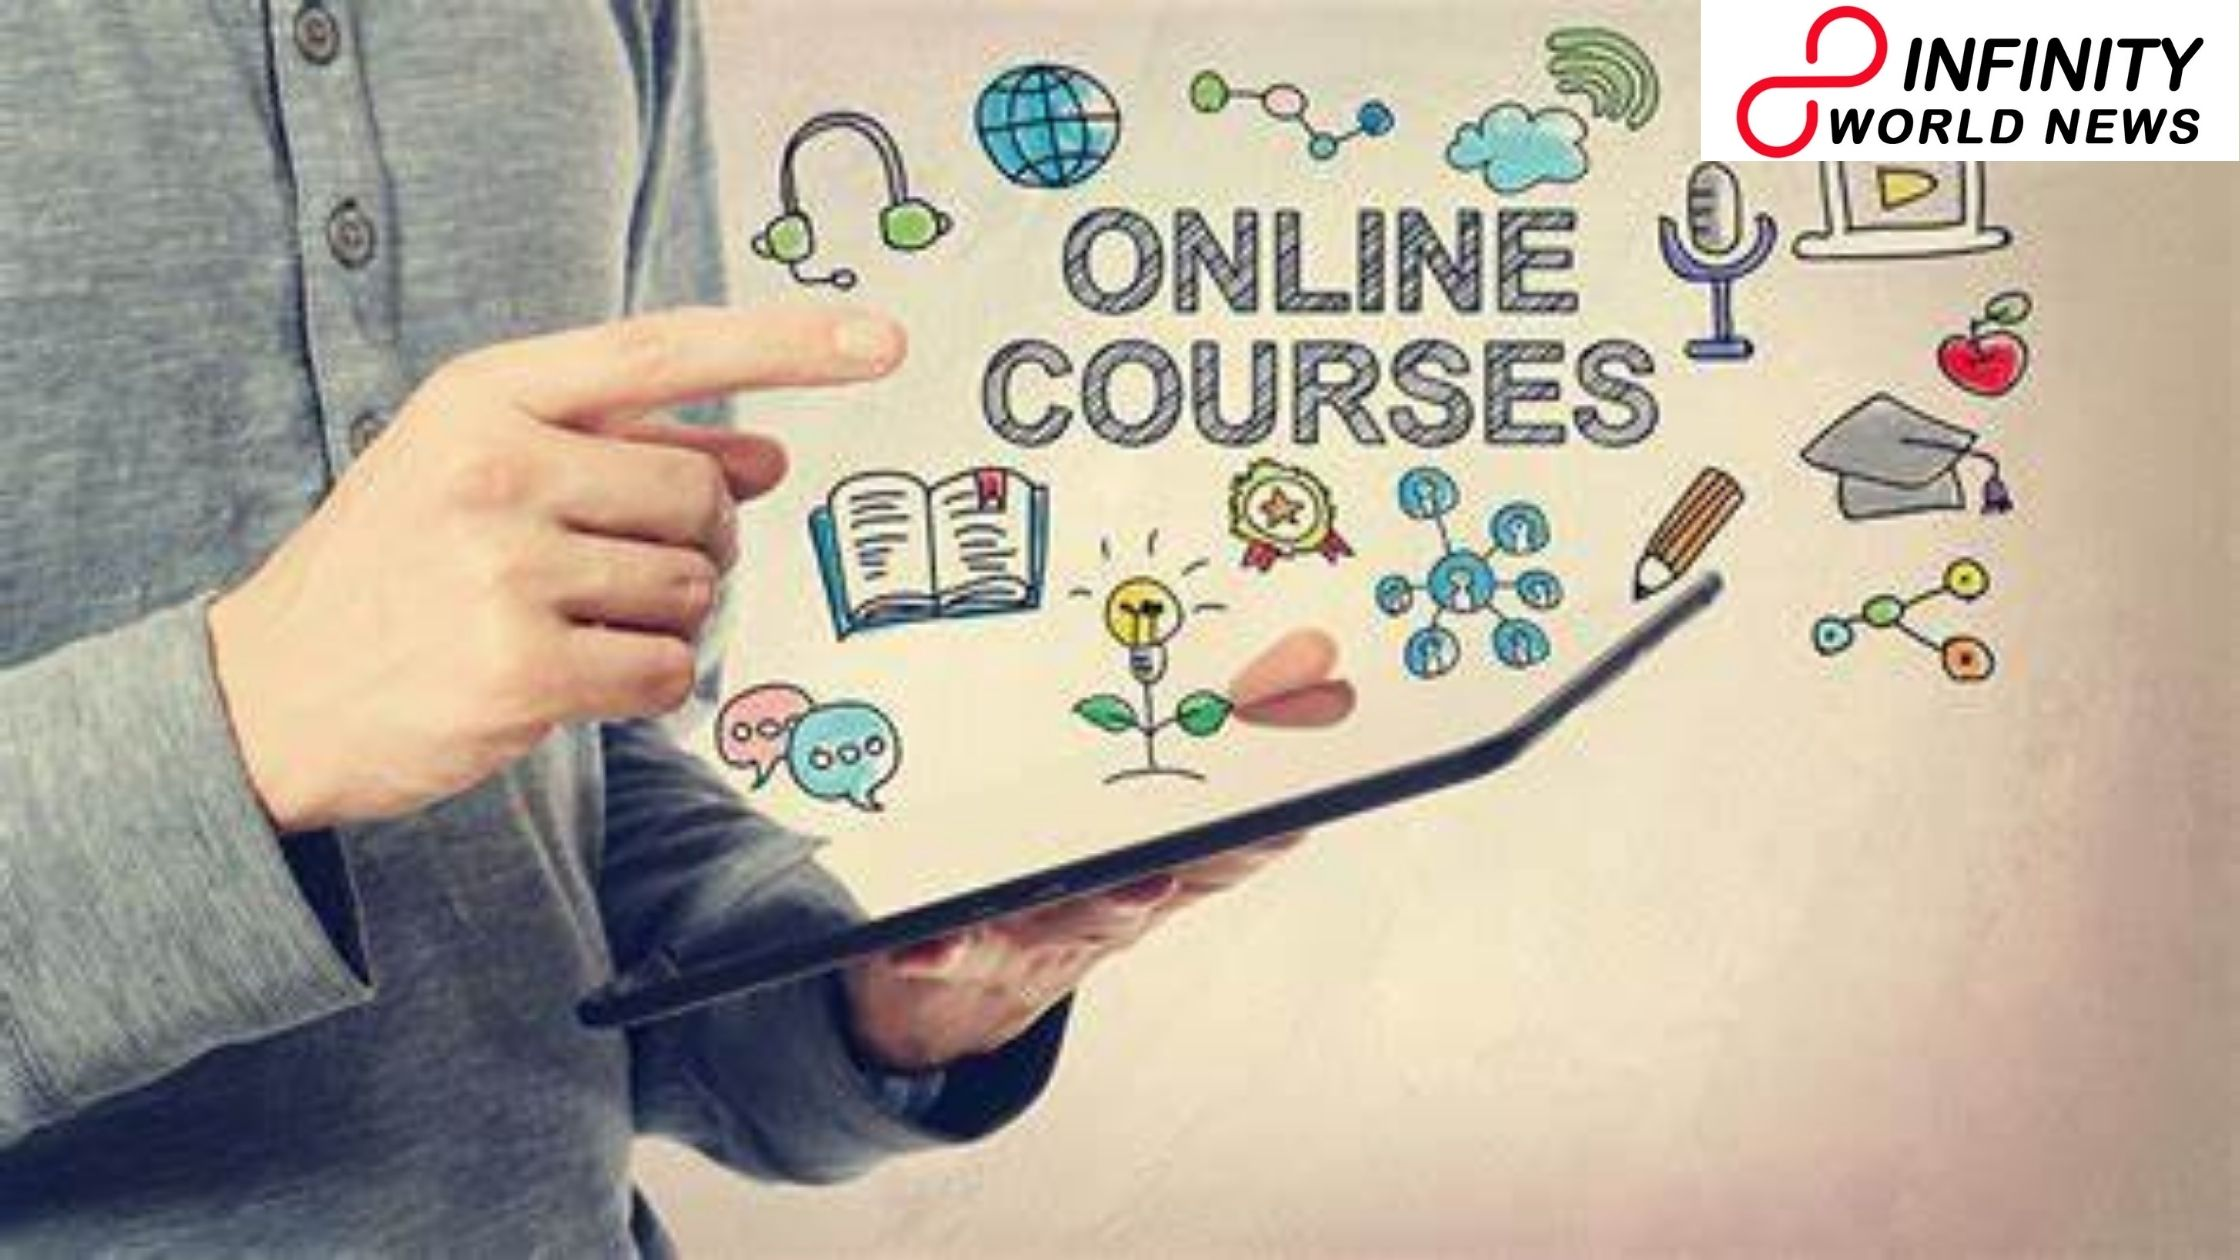 5 kinds of online courses you need to look at in the post-Covid world